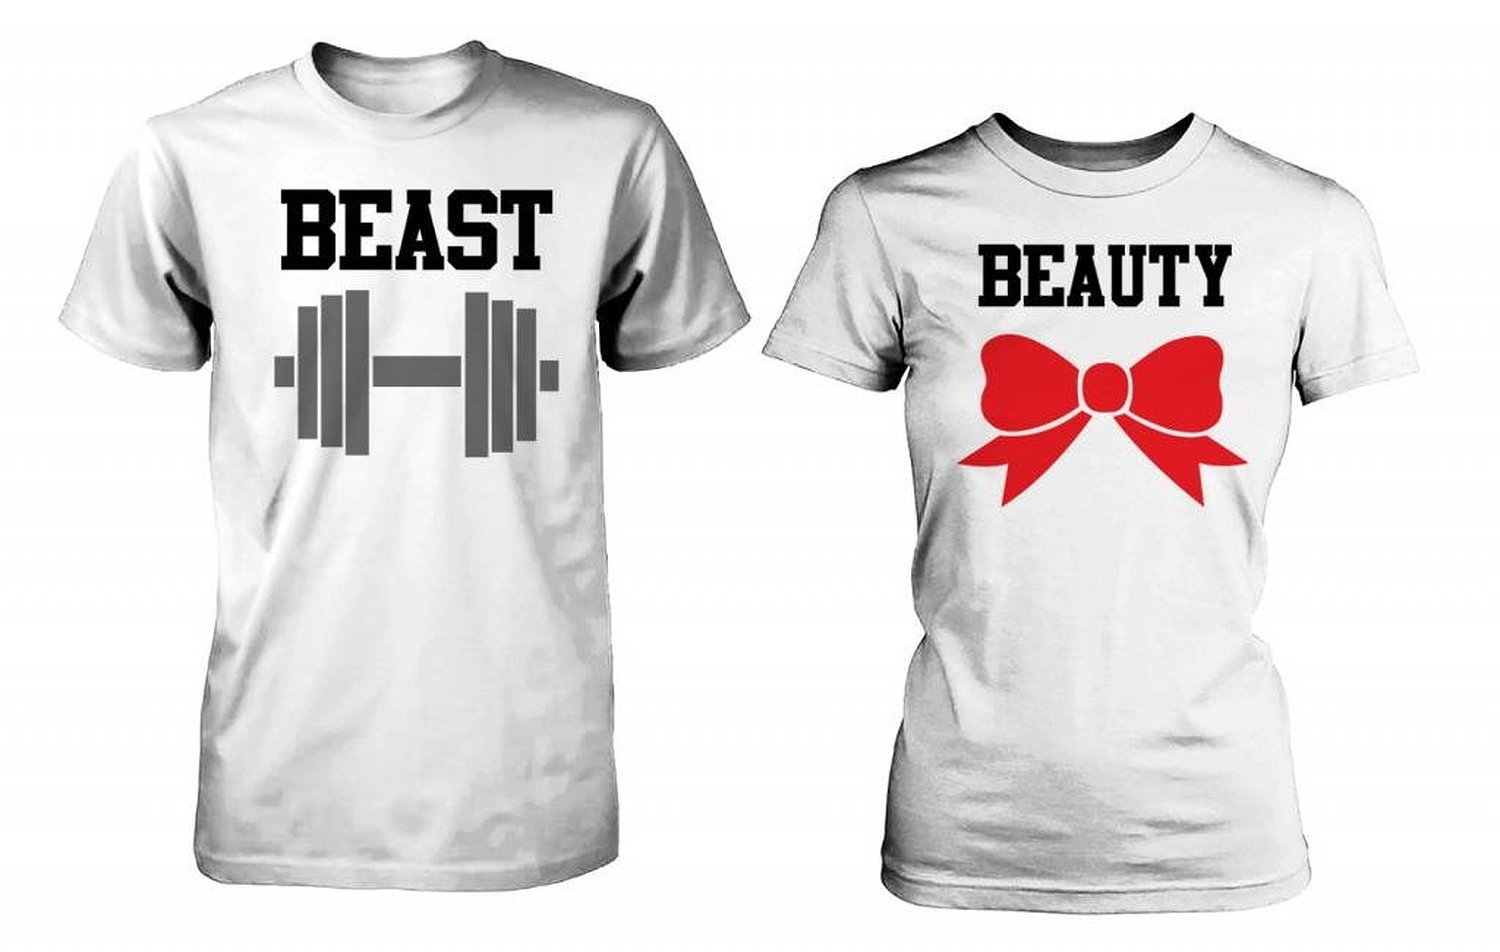 Find and save ideas about Matching couple shirts on Pinterest. | See more ideas about Couple shirts, Matching couples and Funny couple shirts. cute, a shirt his and hers shirts his and hers gifts workout gym clothes matching t-shirts matching shirts workout shirts beauty and the beast shirts beauty and the beast couples shirts couple beauty.